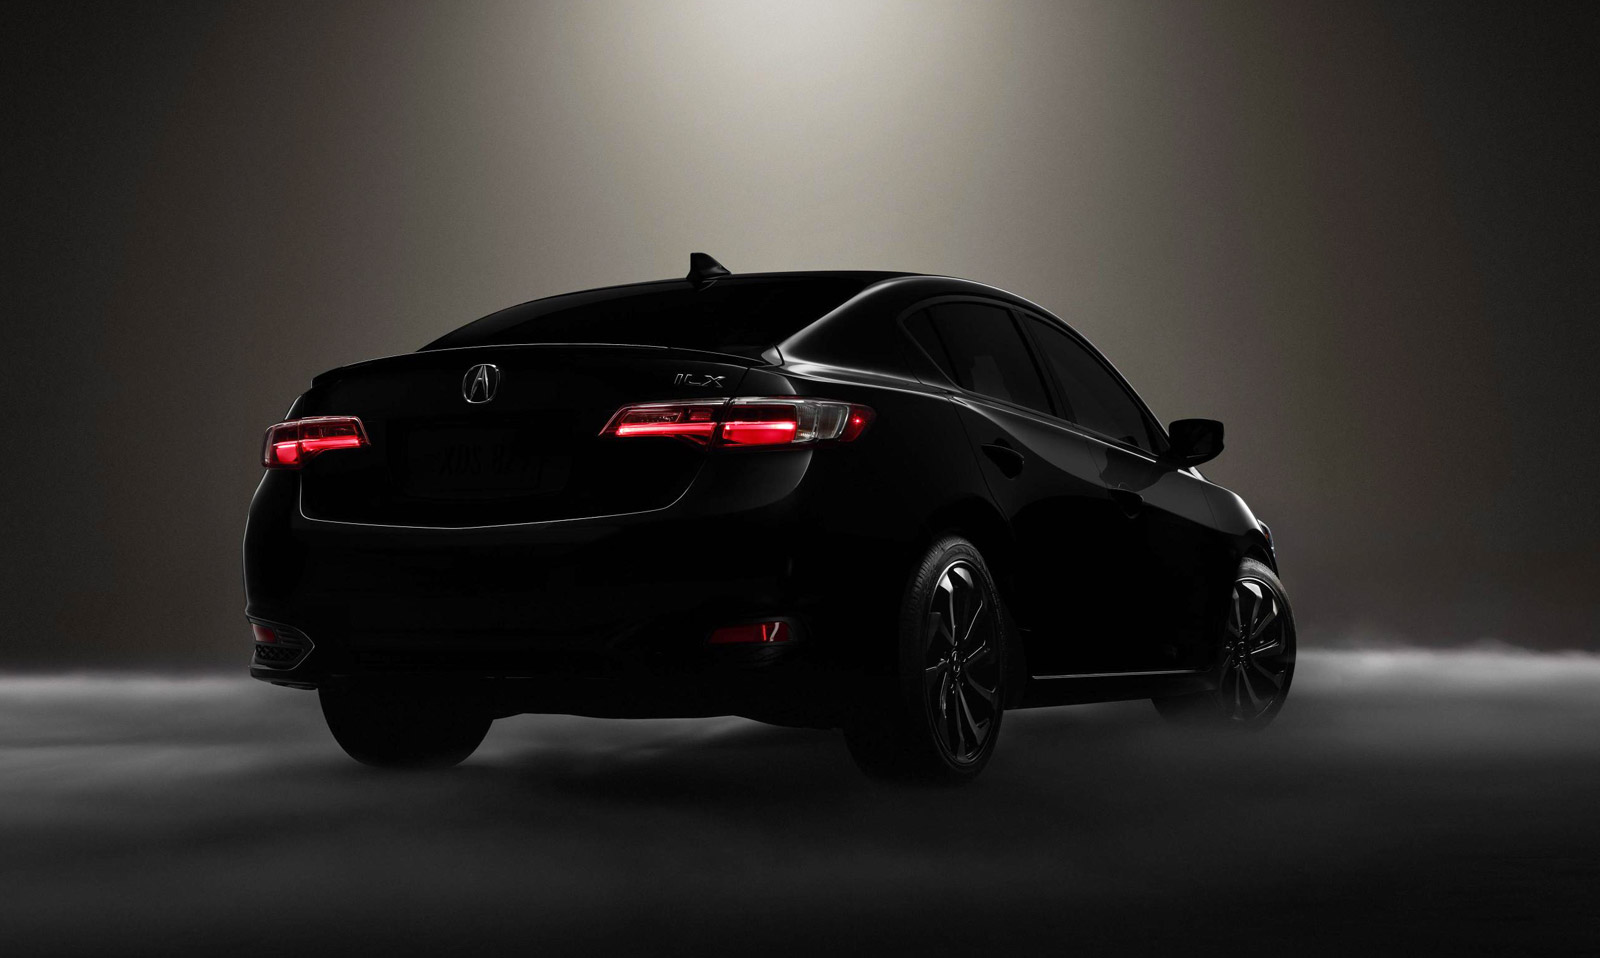 review drive test new buy acura car ilx expert